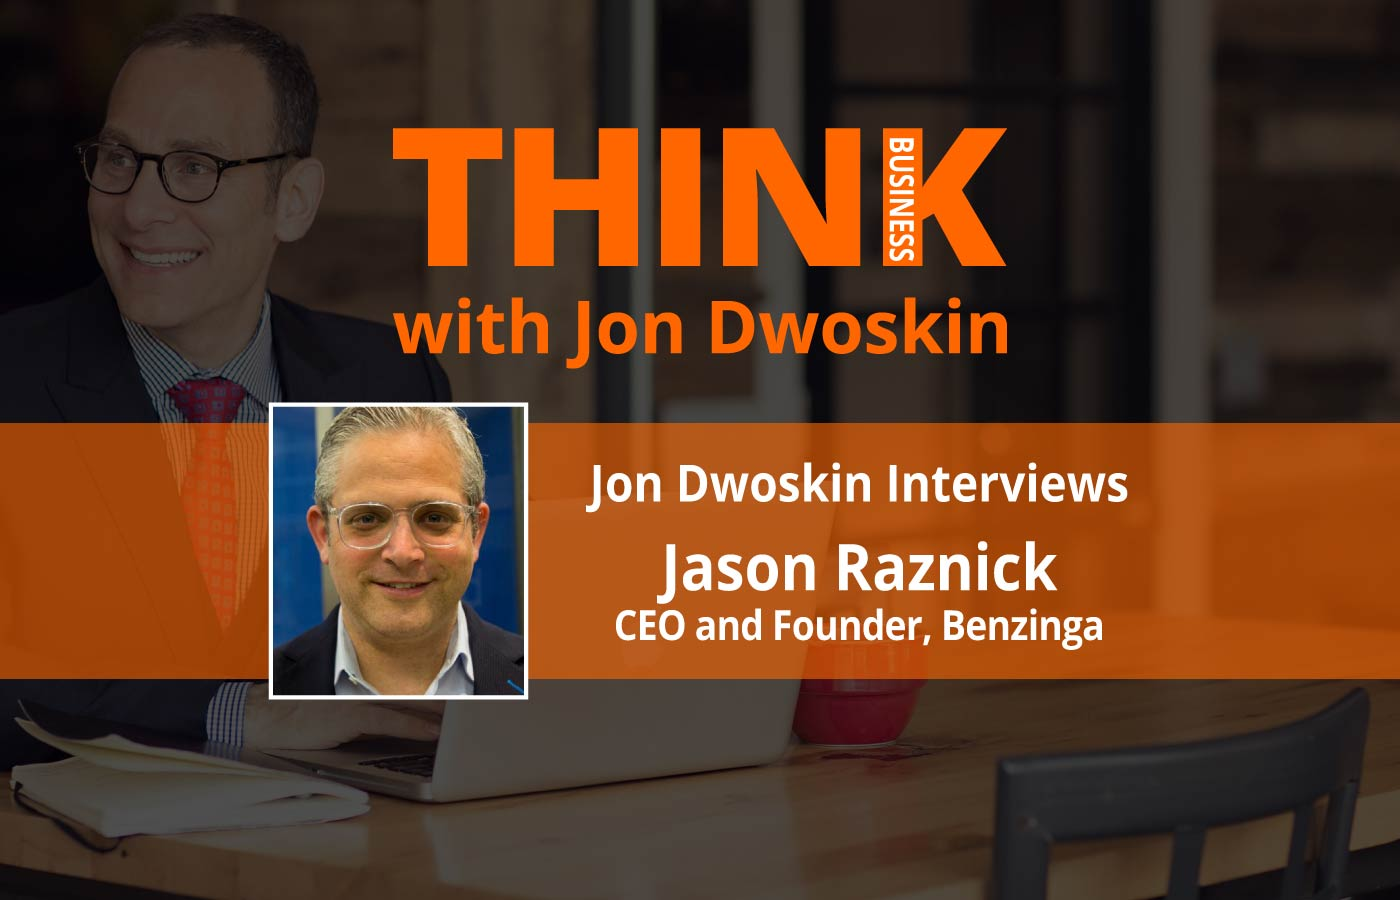 THINK Business: Jon Dwoskin Interviews Jason Raznick, CEO and Founder of Benzinga